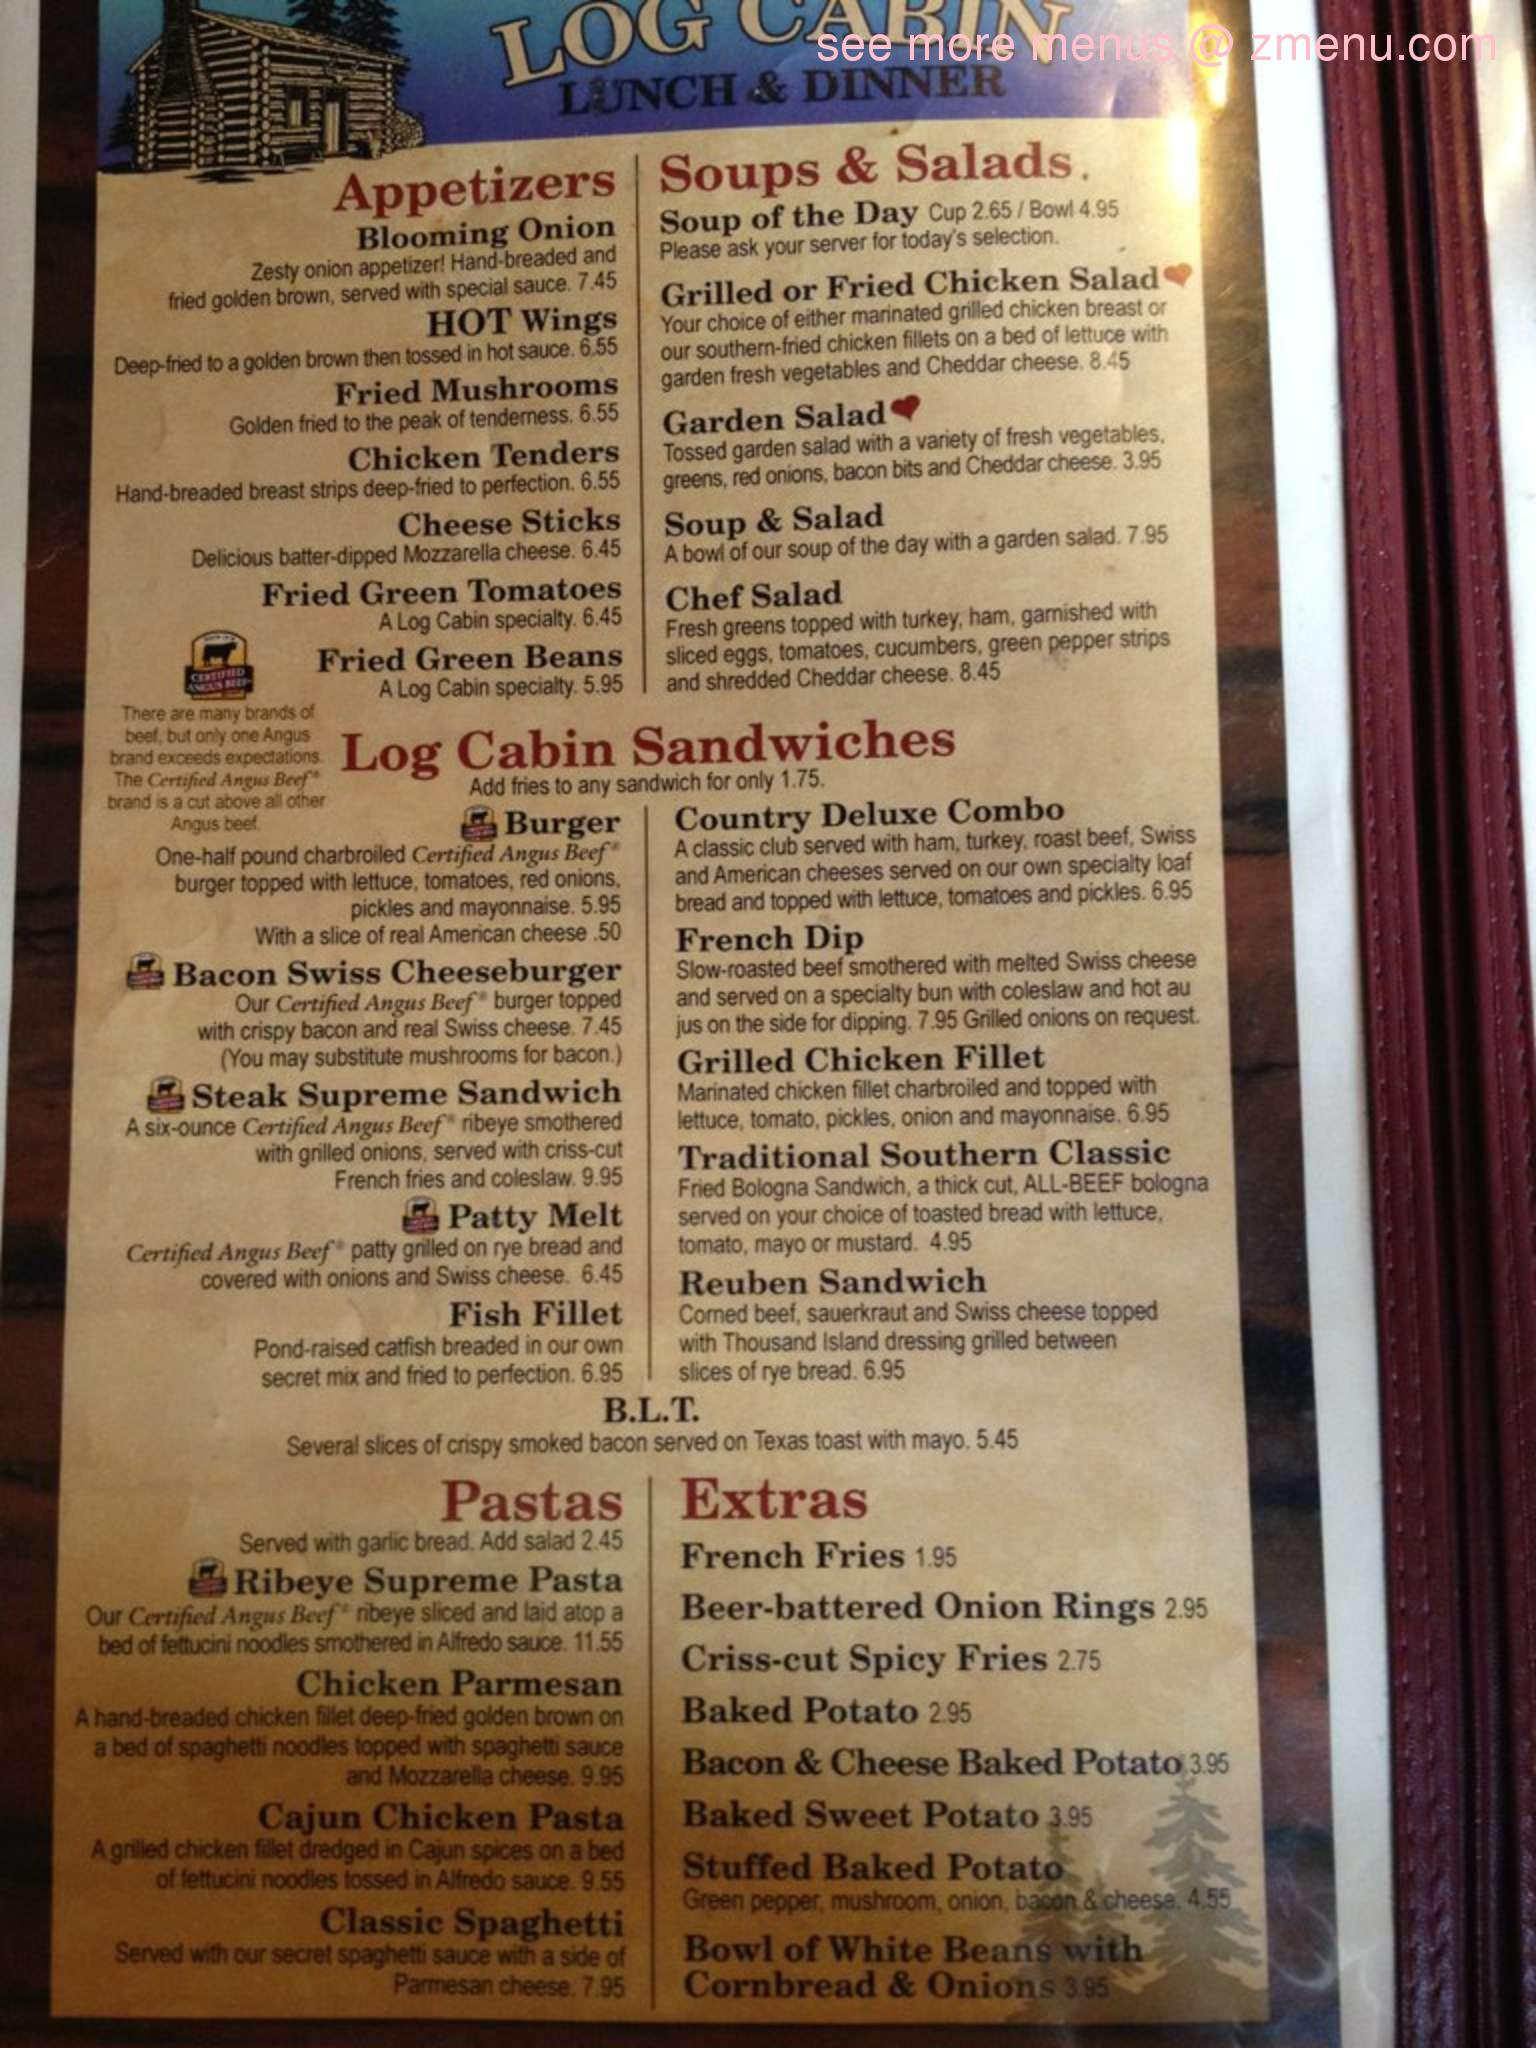 Log Cabin Restaurant Hurricane Mills Tn Menu